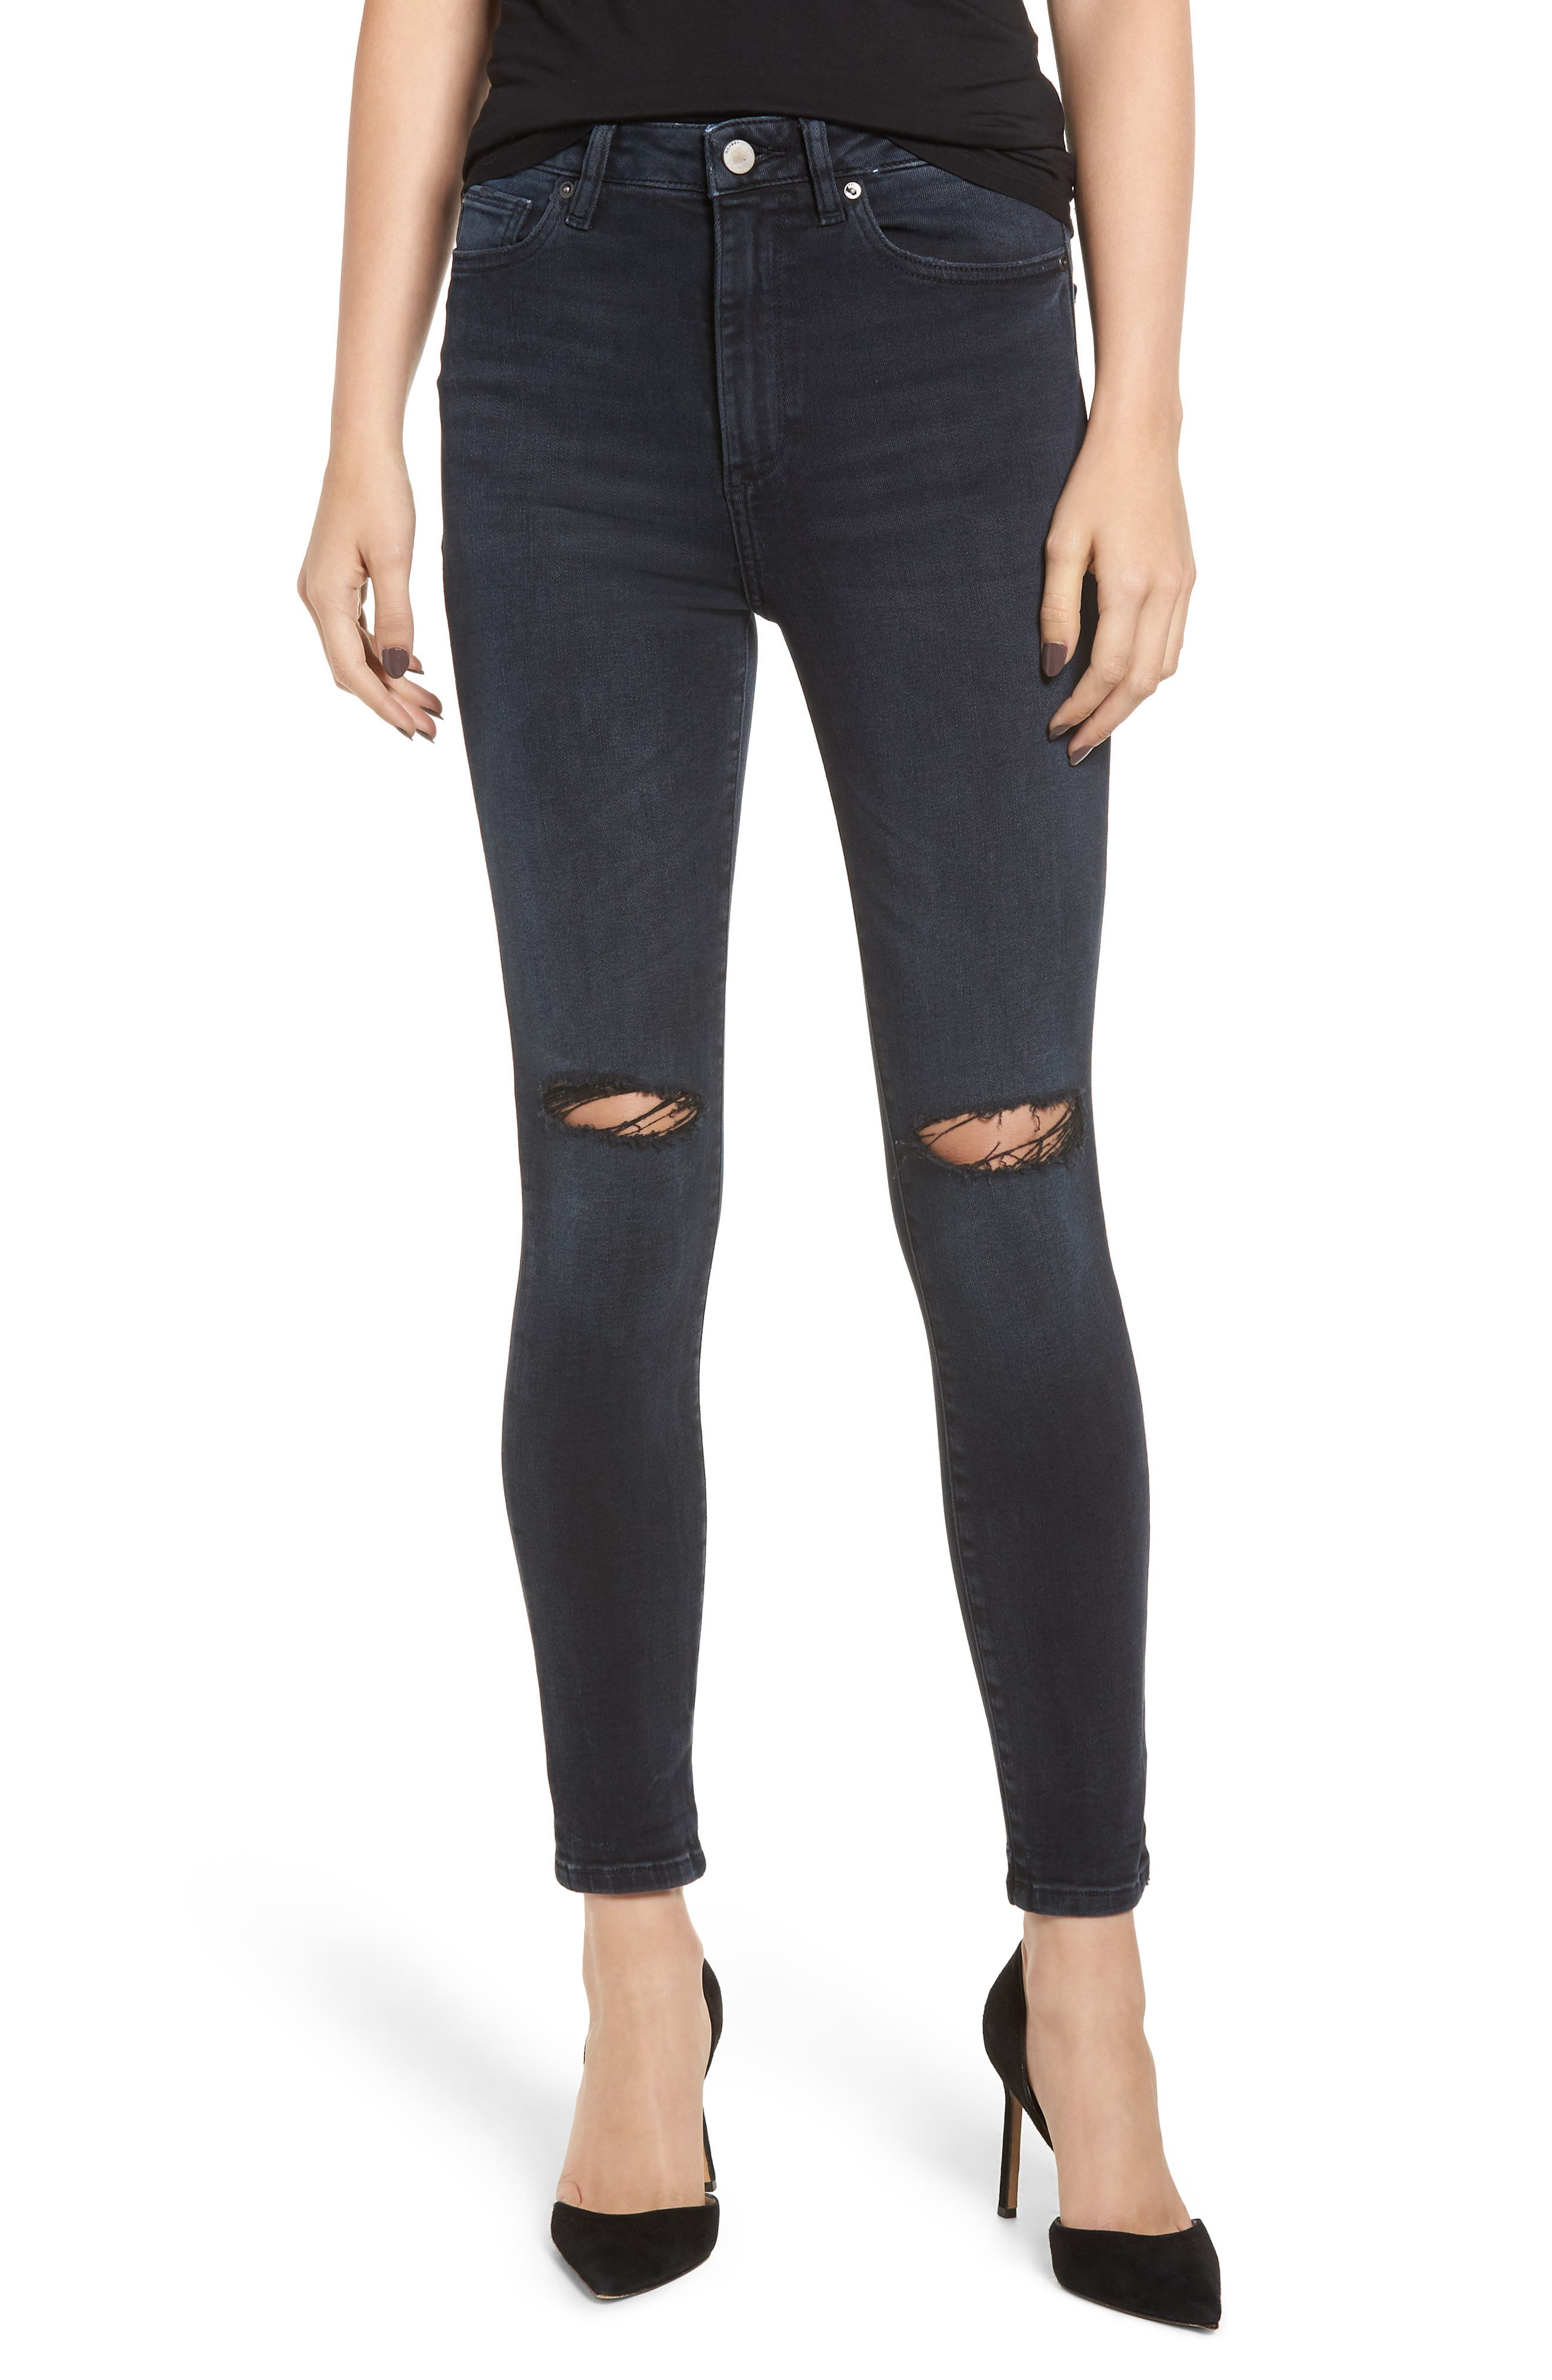 Chrissy Ultra High Waist Ankle Skinny Jeans,                             Main thumbnail 1, color,                             PORTER